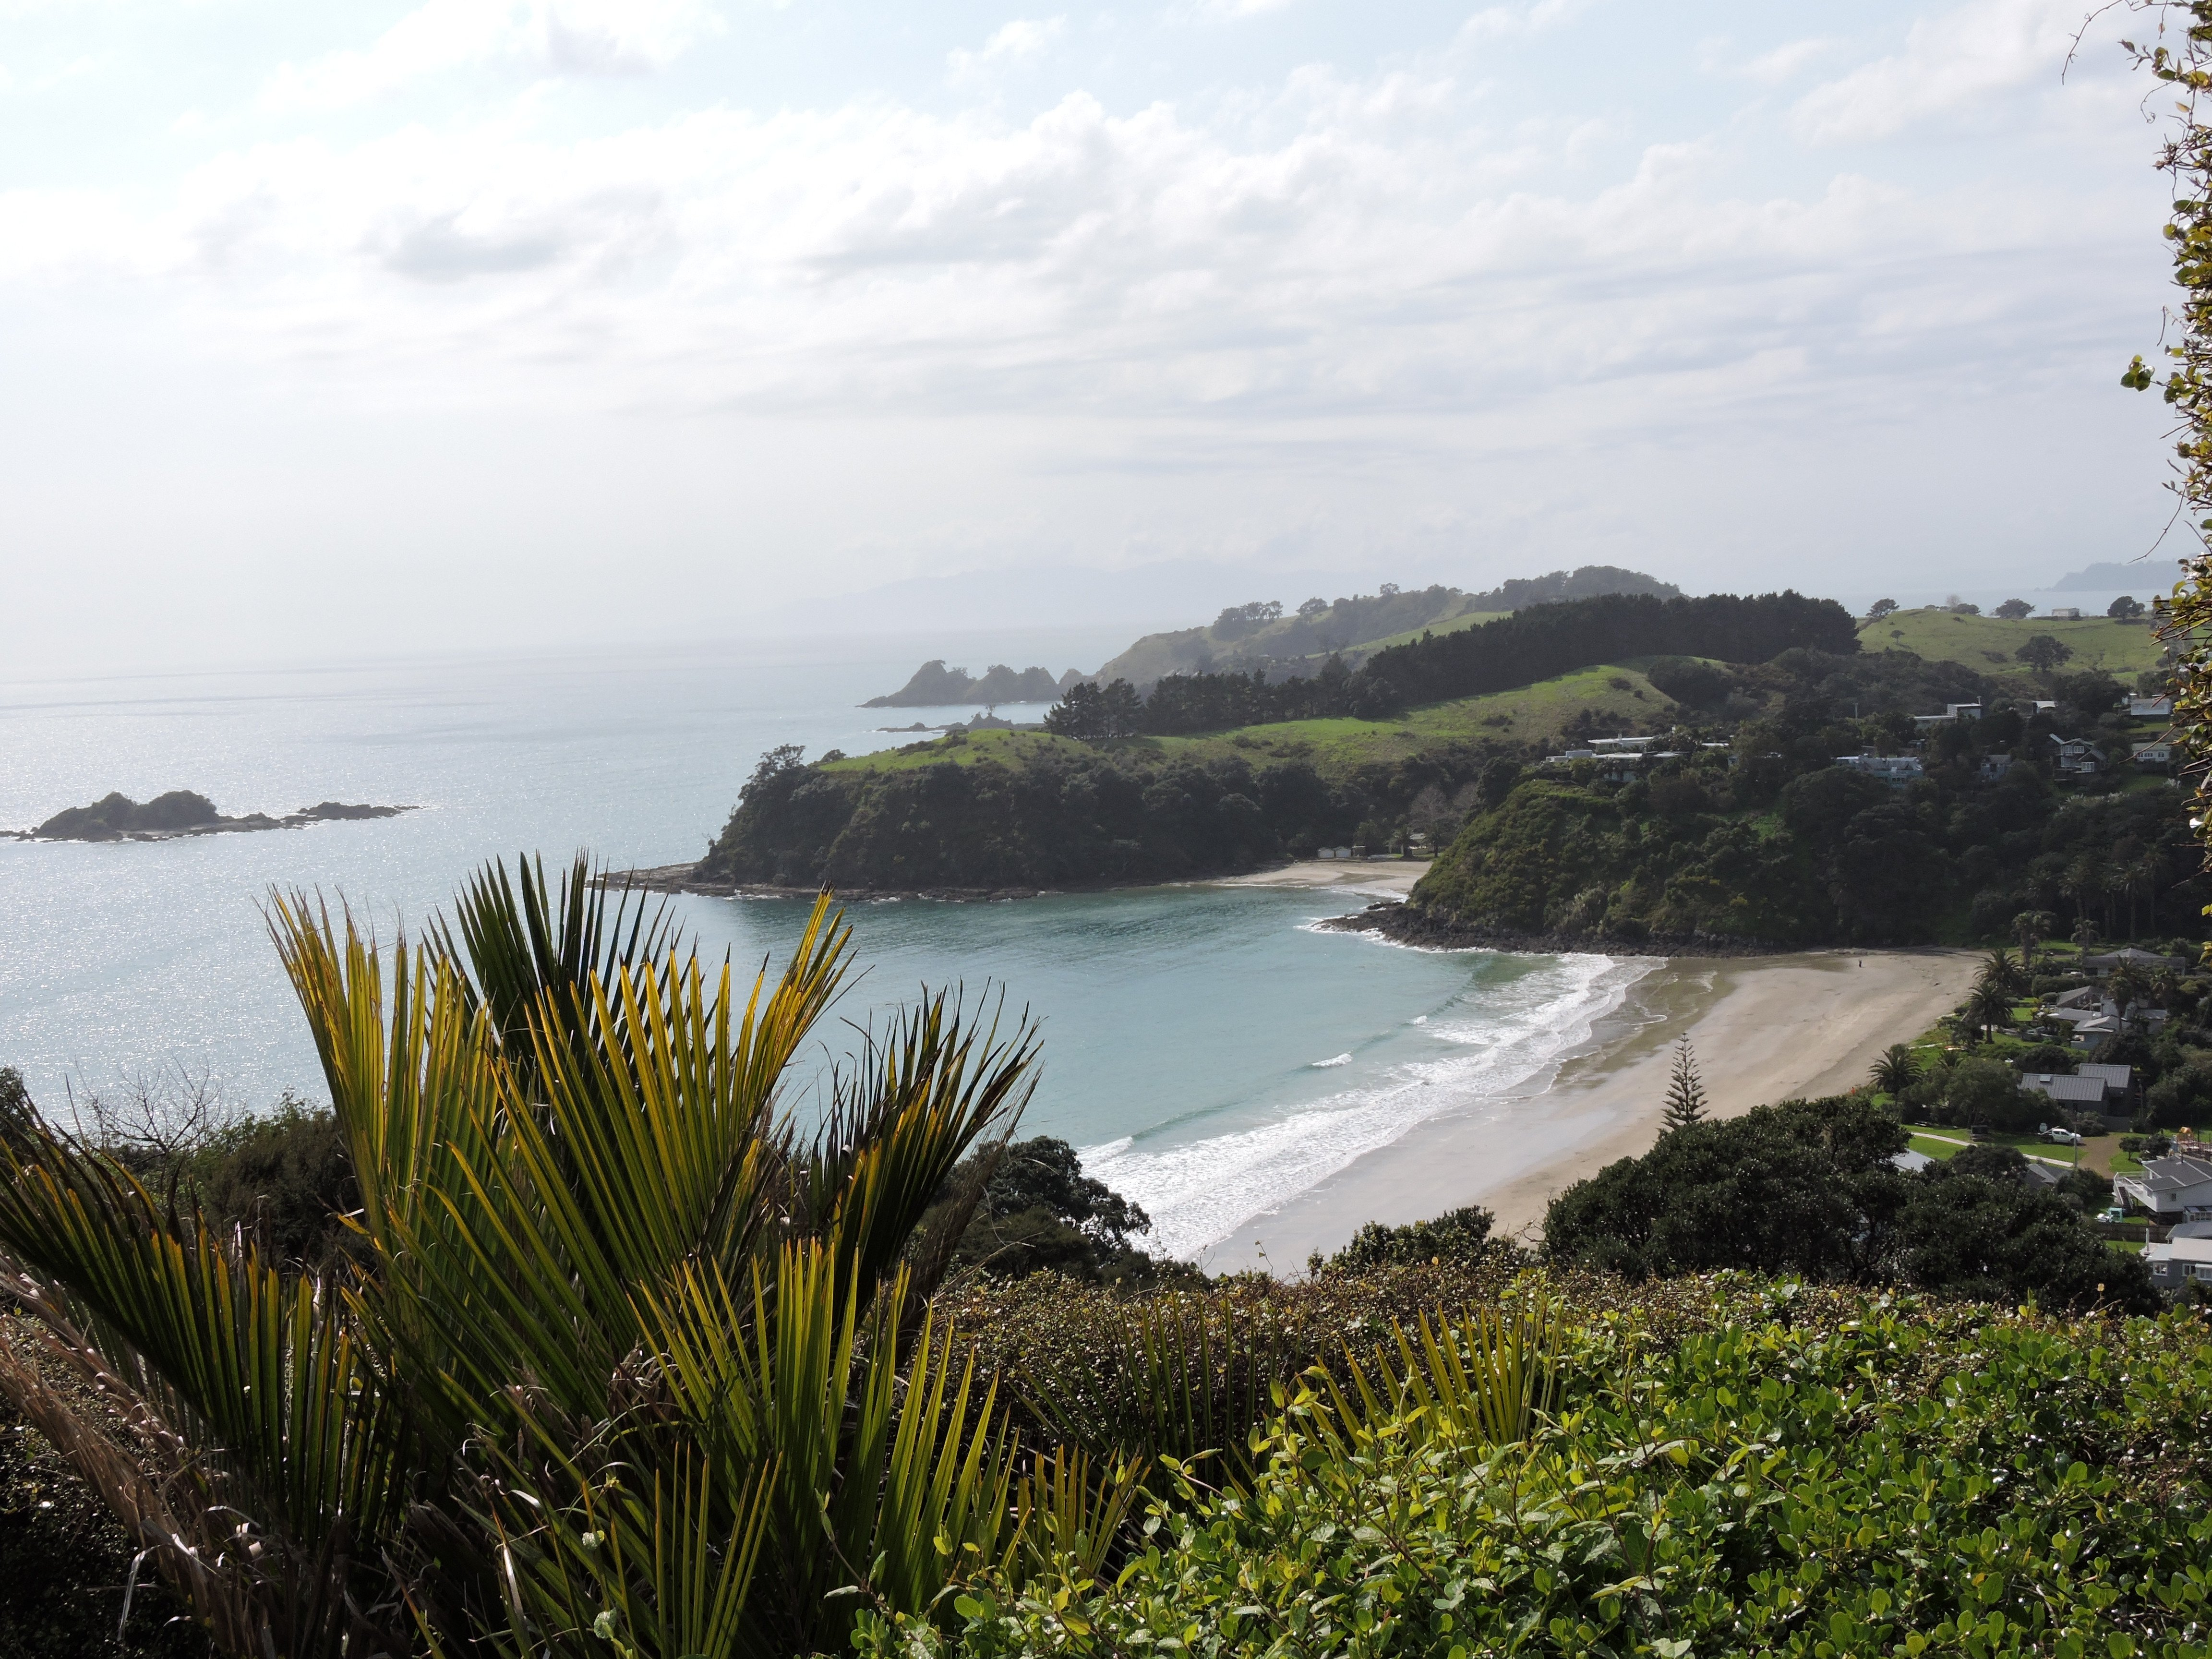 Image of beach on Waiheke Island